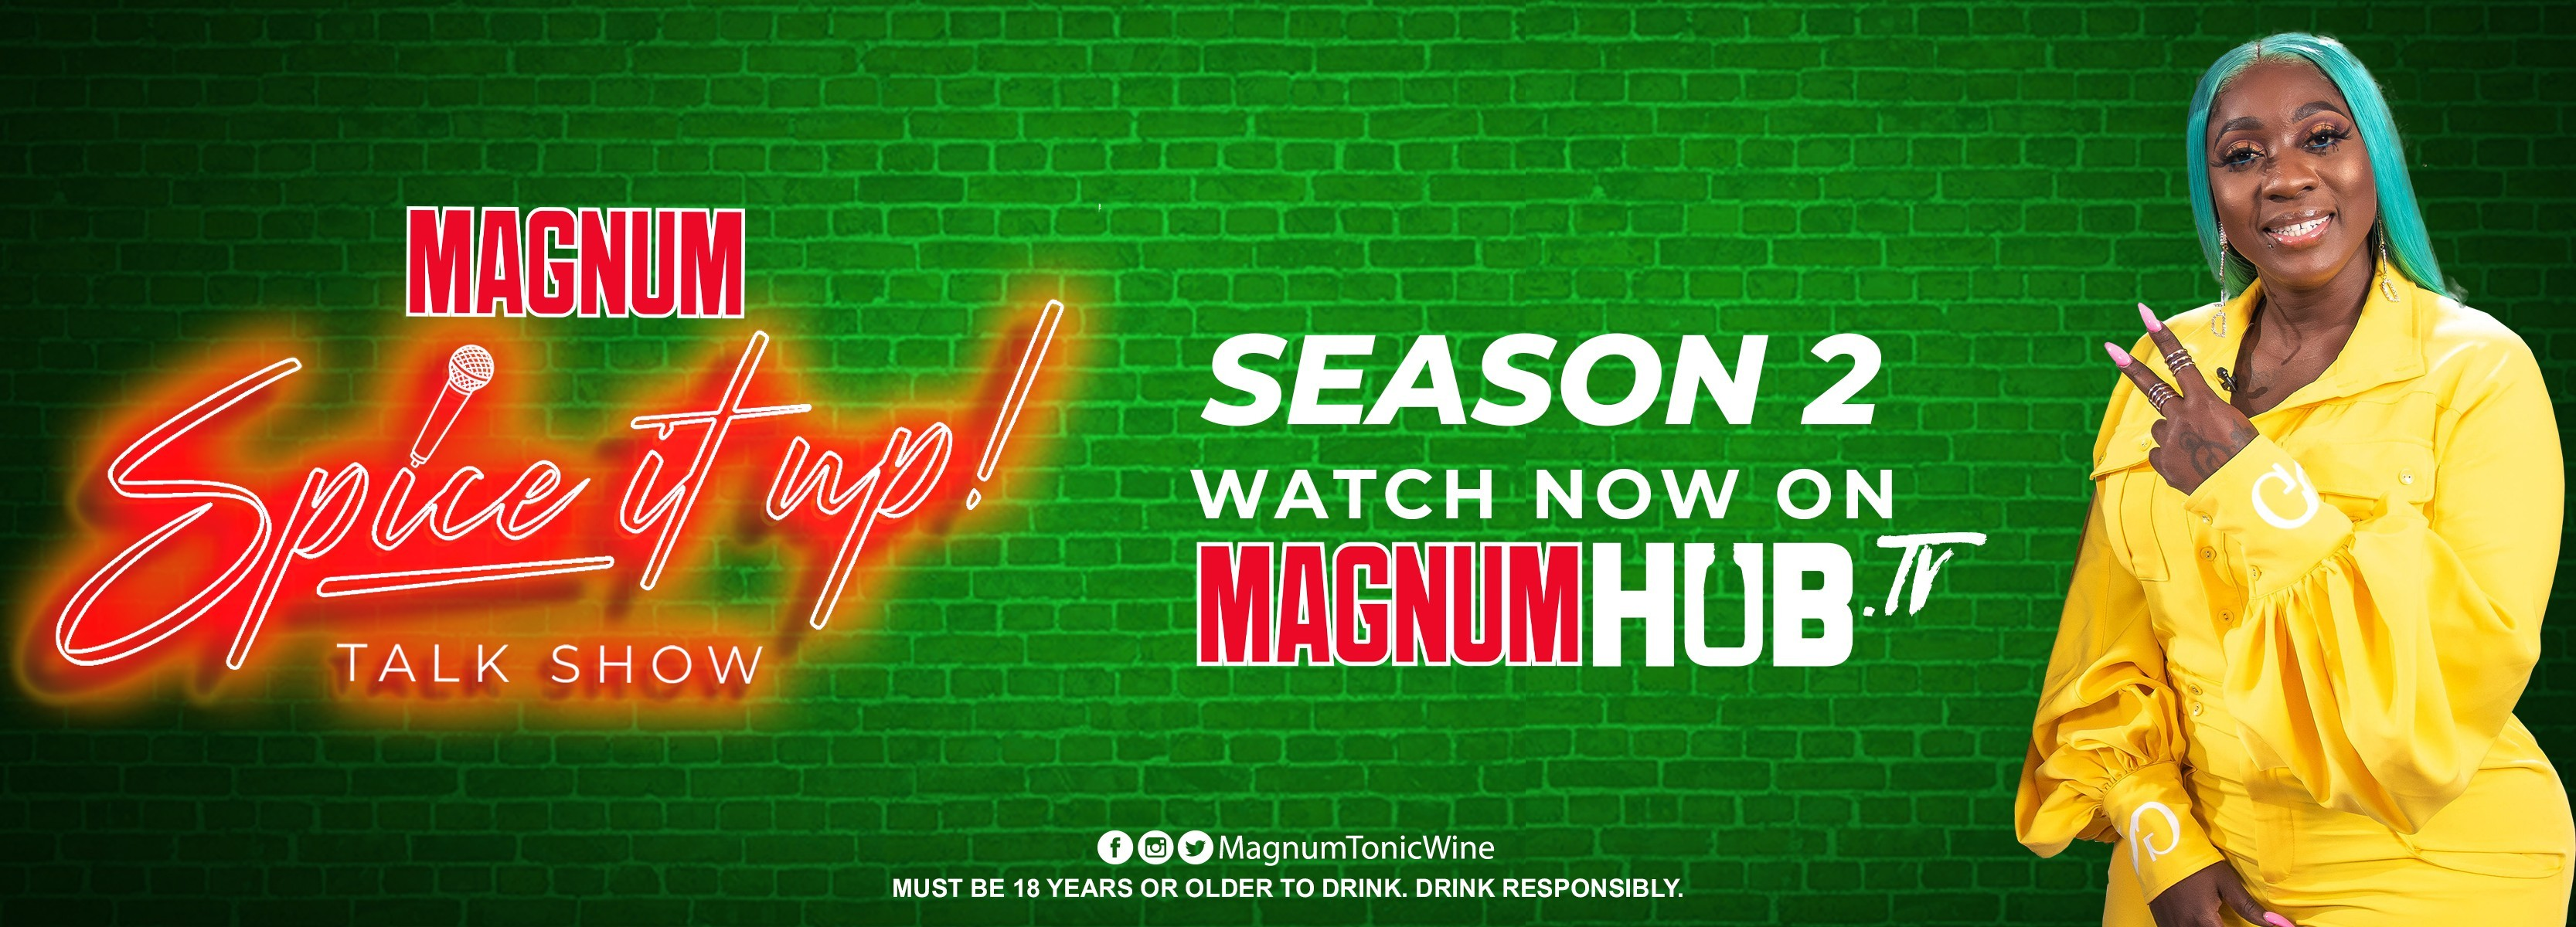 Click here to watch Spice it Up Season 2 episodes now